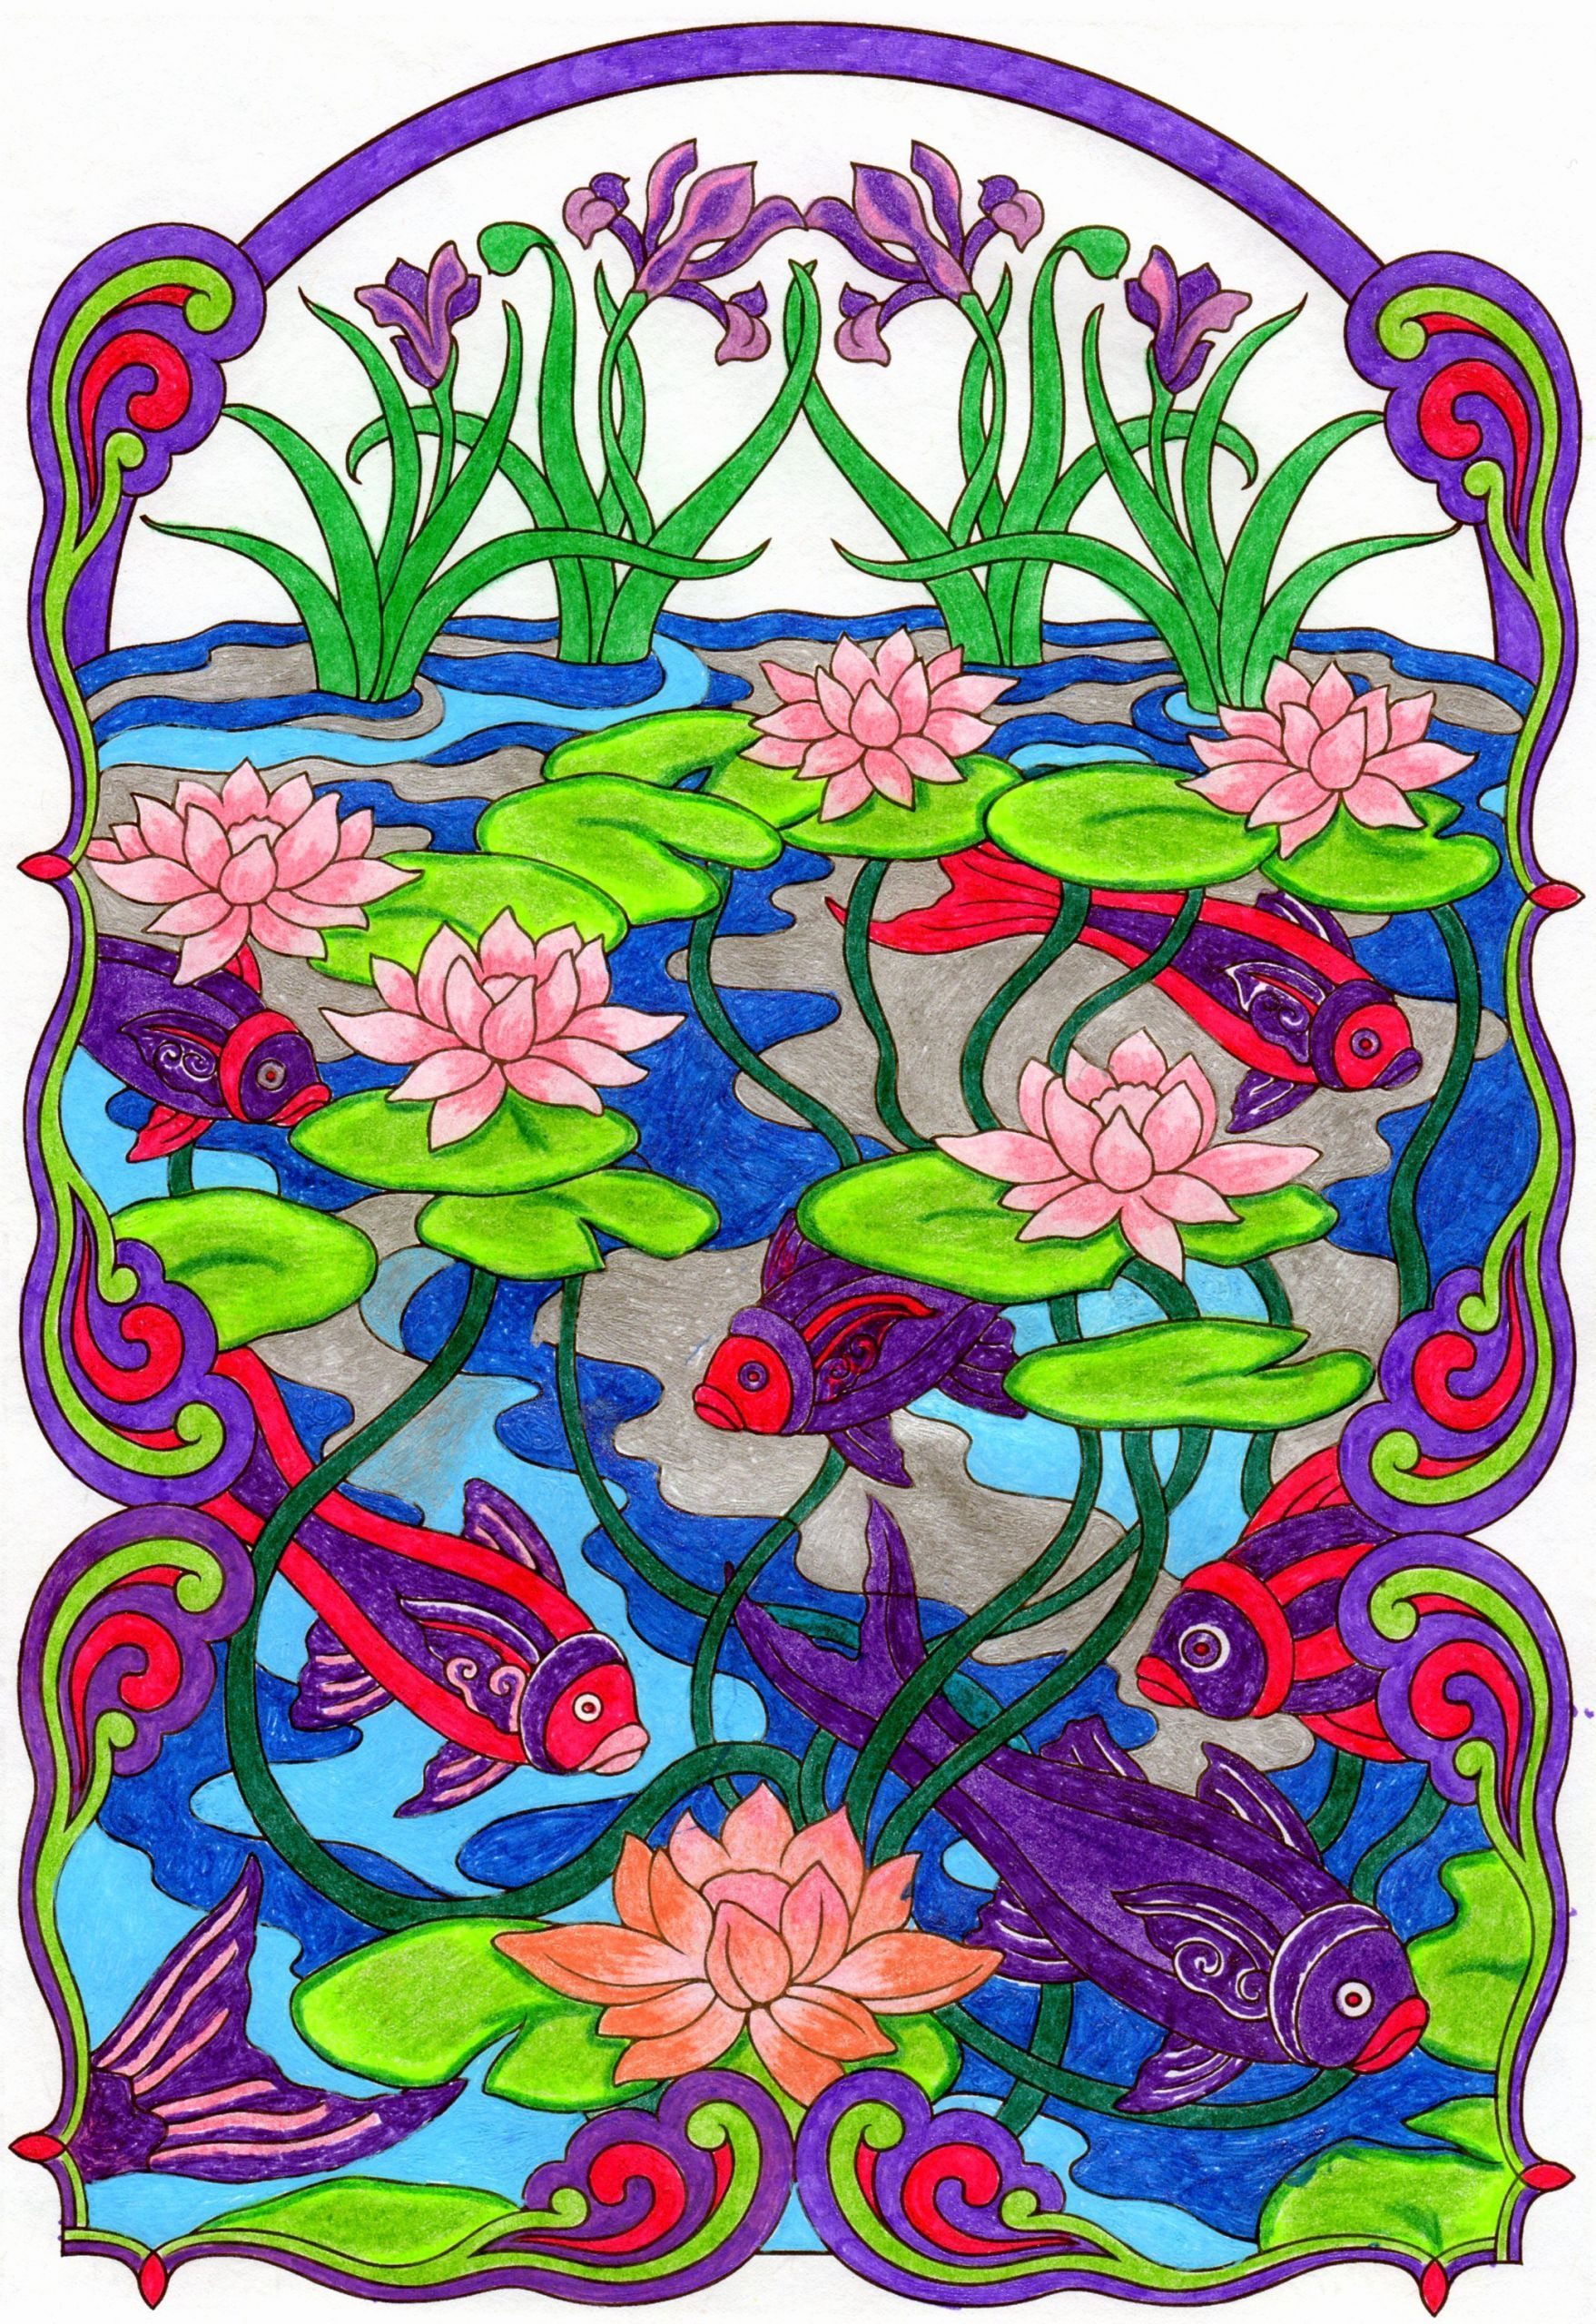 Magic Marker Coloring Book Lovely Done With Magic Markers Dec 2012 By Mk Dover Book Designs Coloring Books Coloring Books Cat Coloring Book